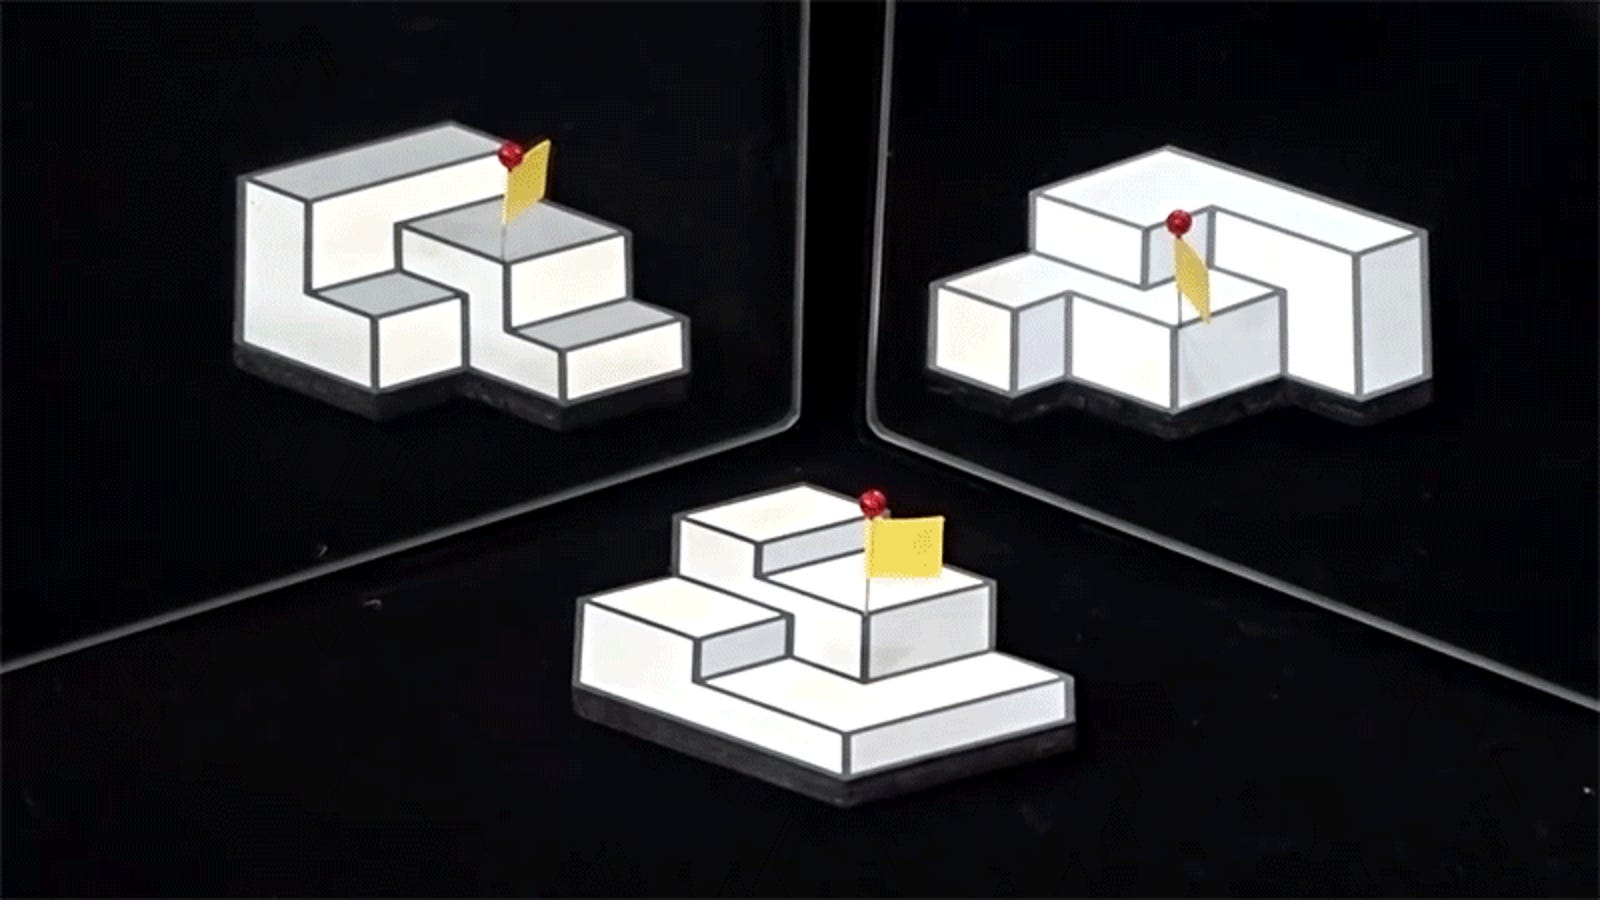 The 'Best Illusion of the Year' Will Make You Mistrust Your Brain